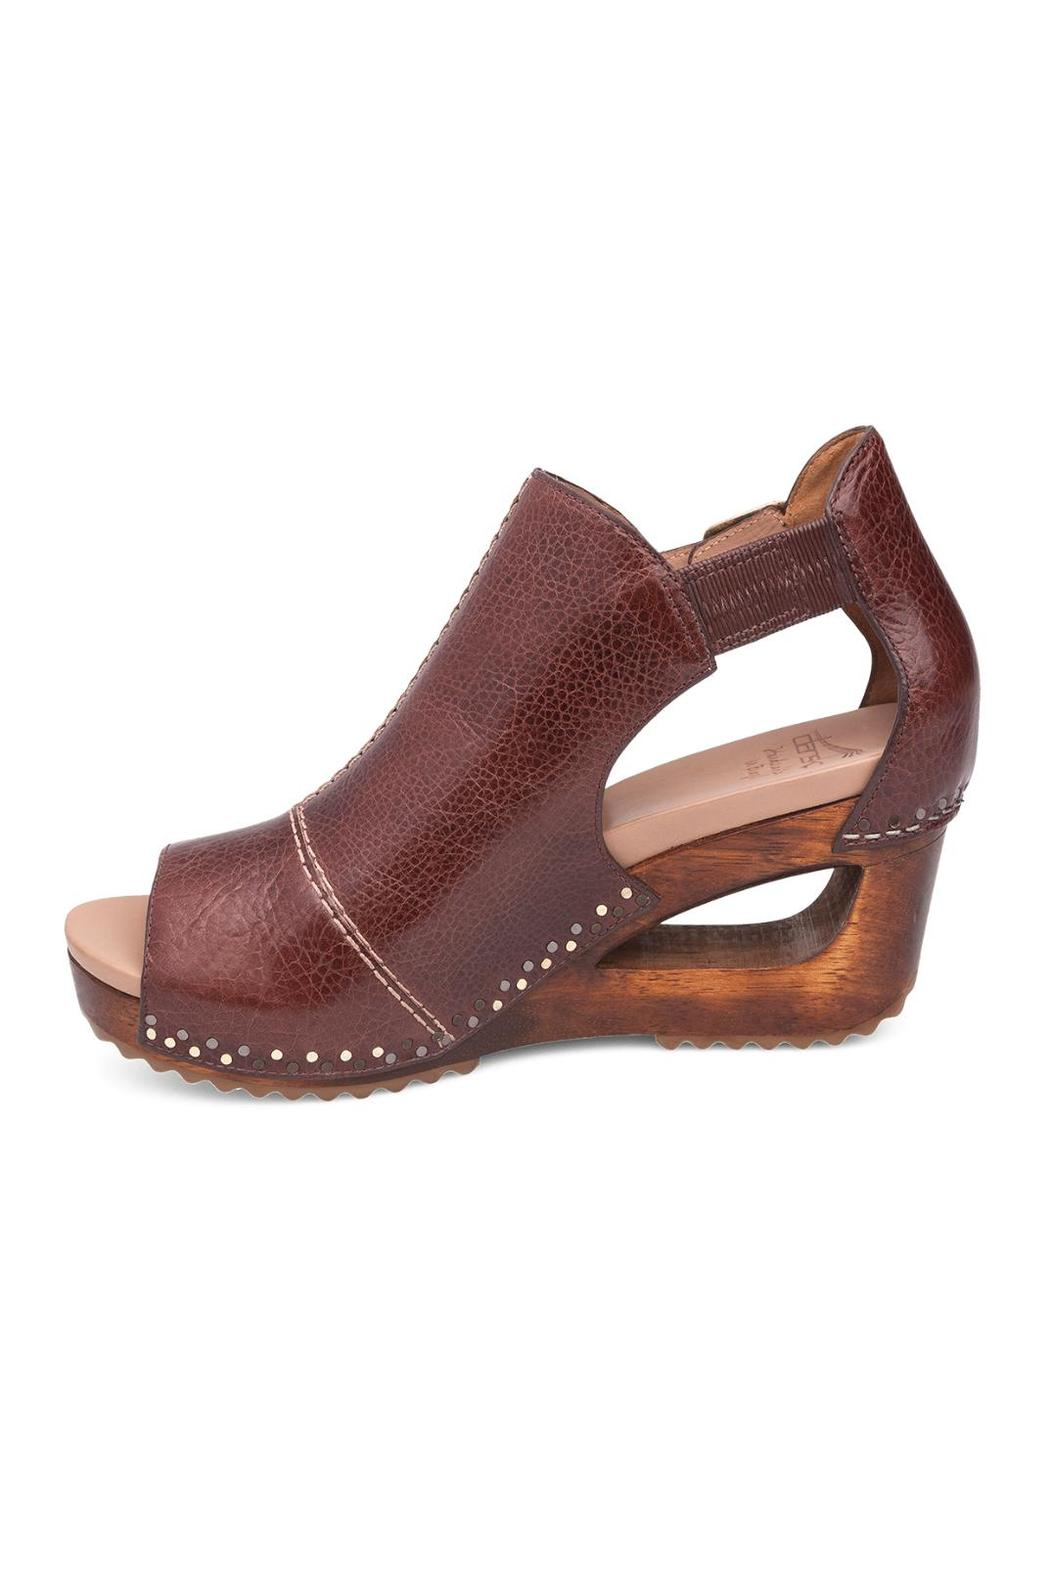 Dansko Sable Limited Edition - Front Cropped Image